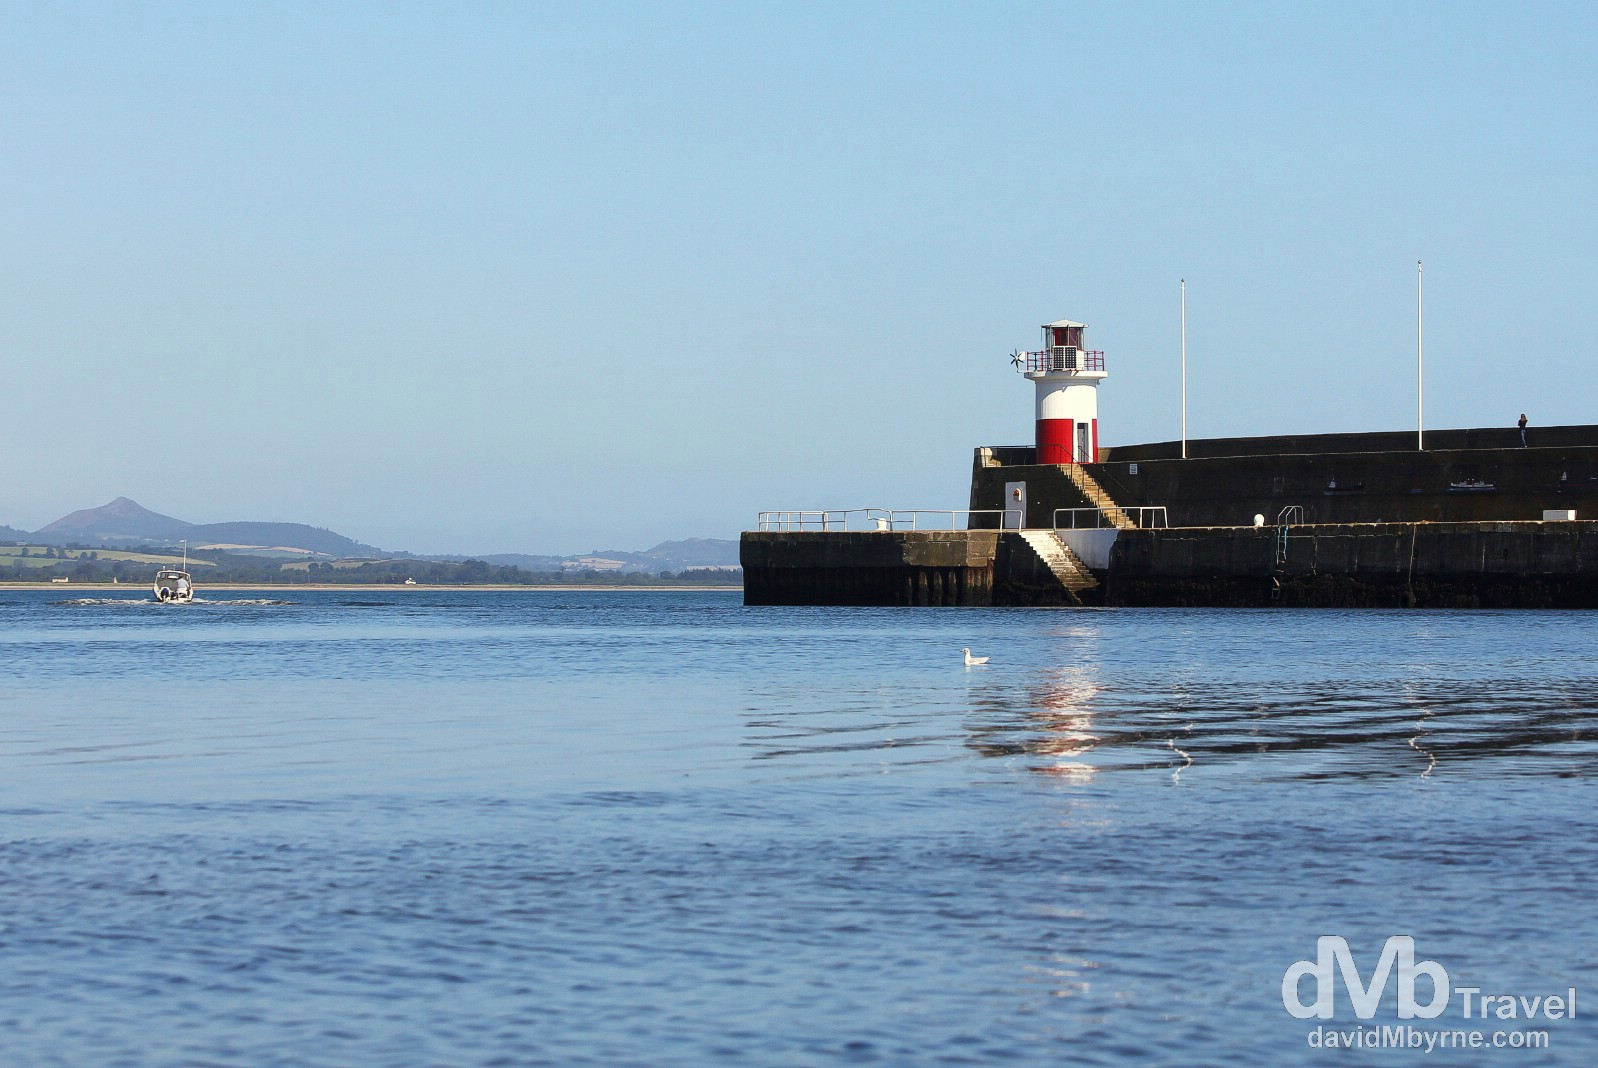 Wicklow Harbour, Co. Wicklow, Ireland. August 31, 2014.